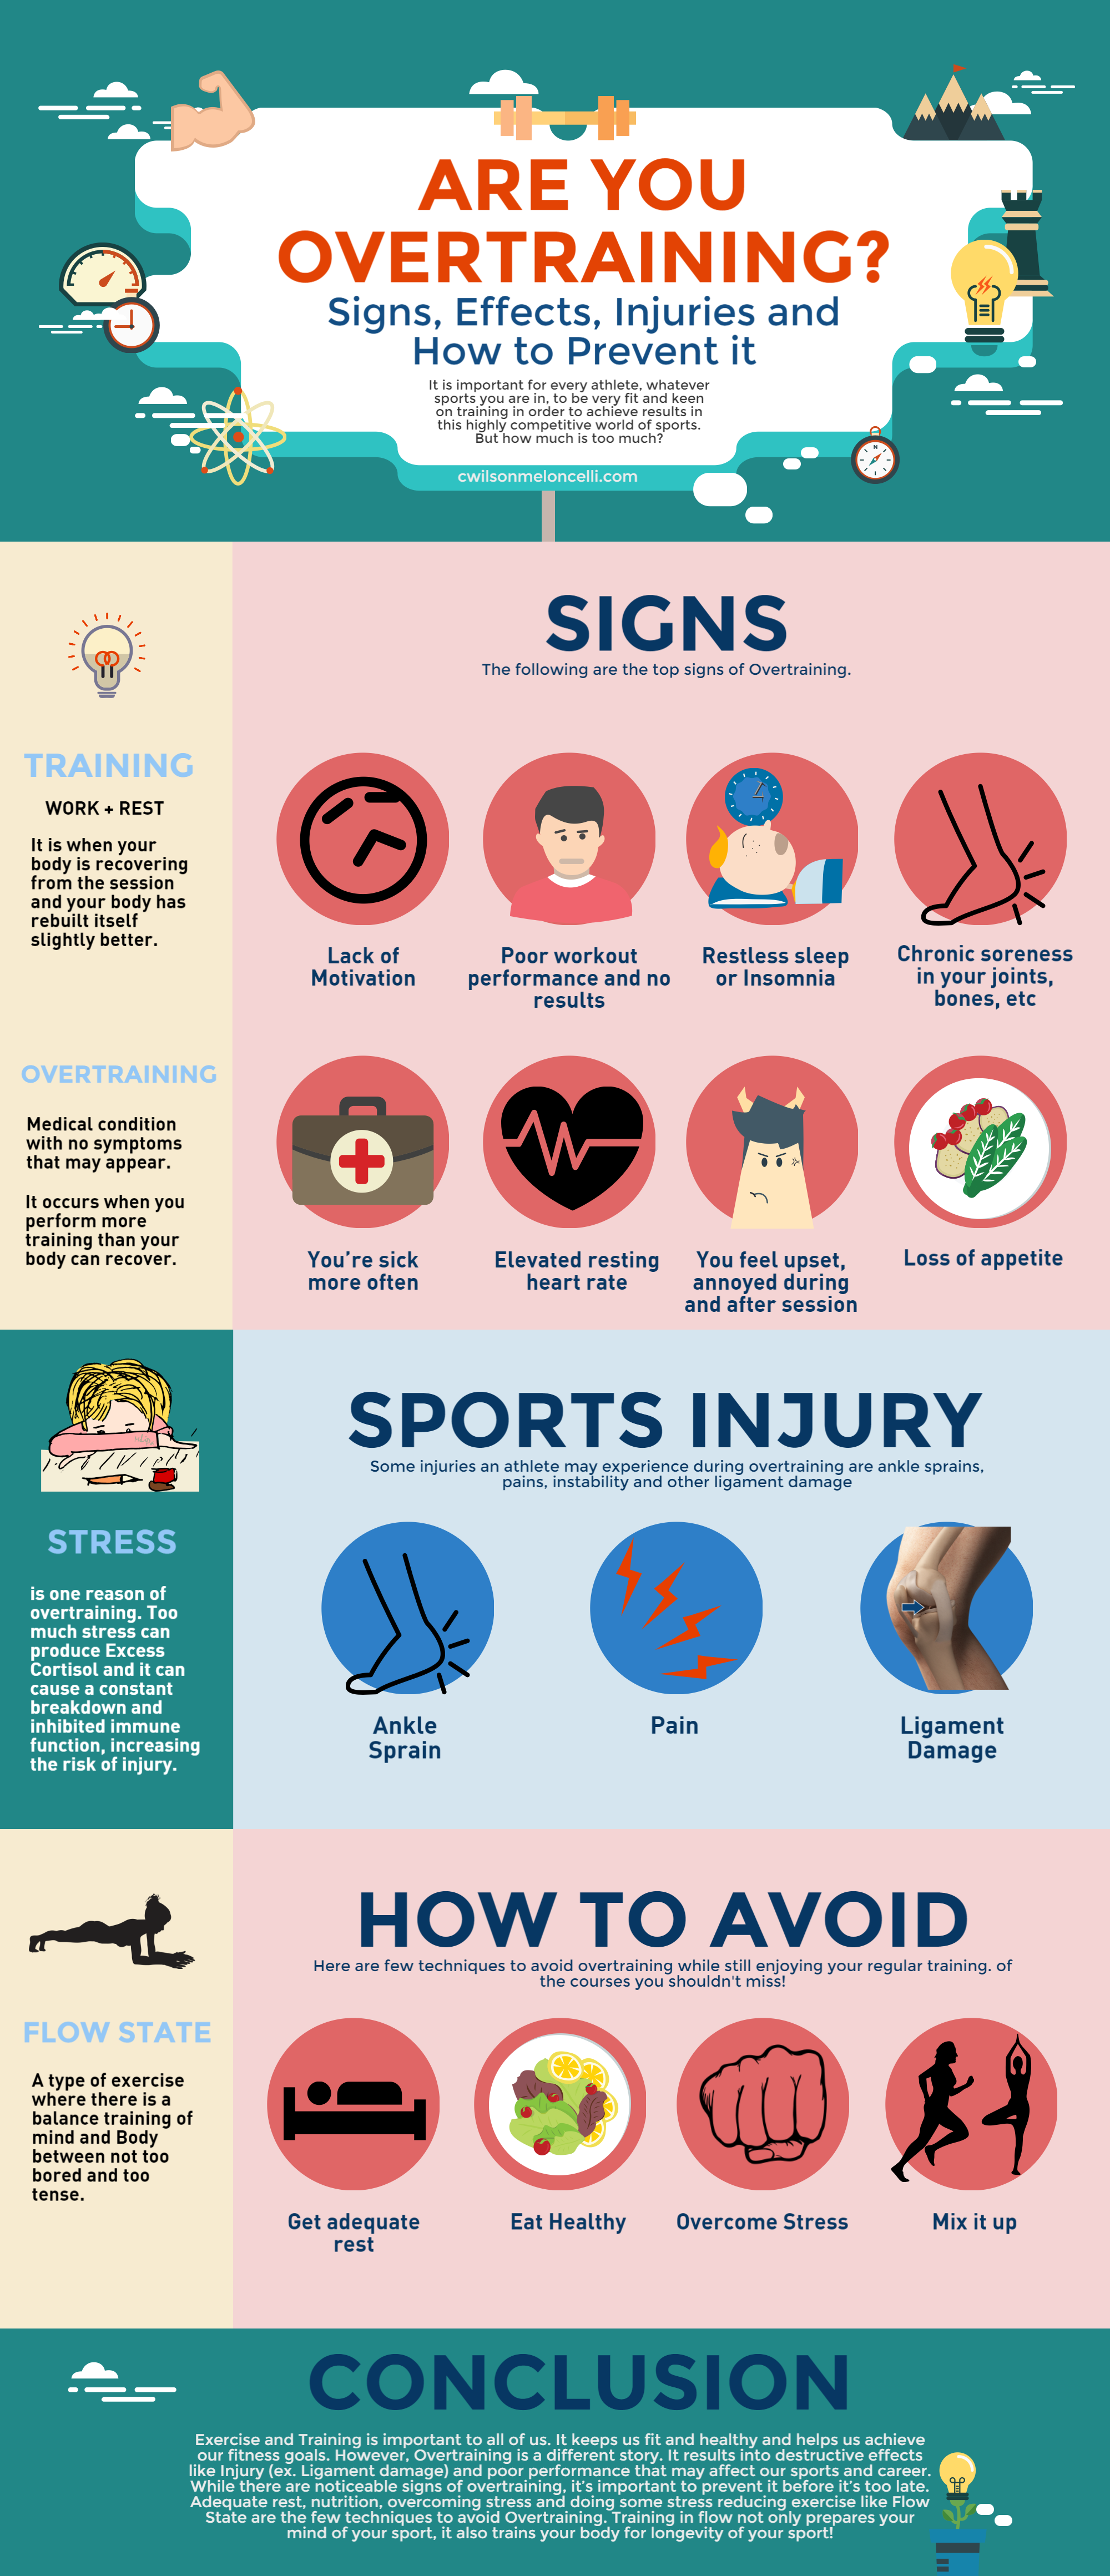 Are You Overtraining?   Signs, Effects, Injuries and How to Prevent it